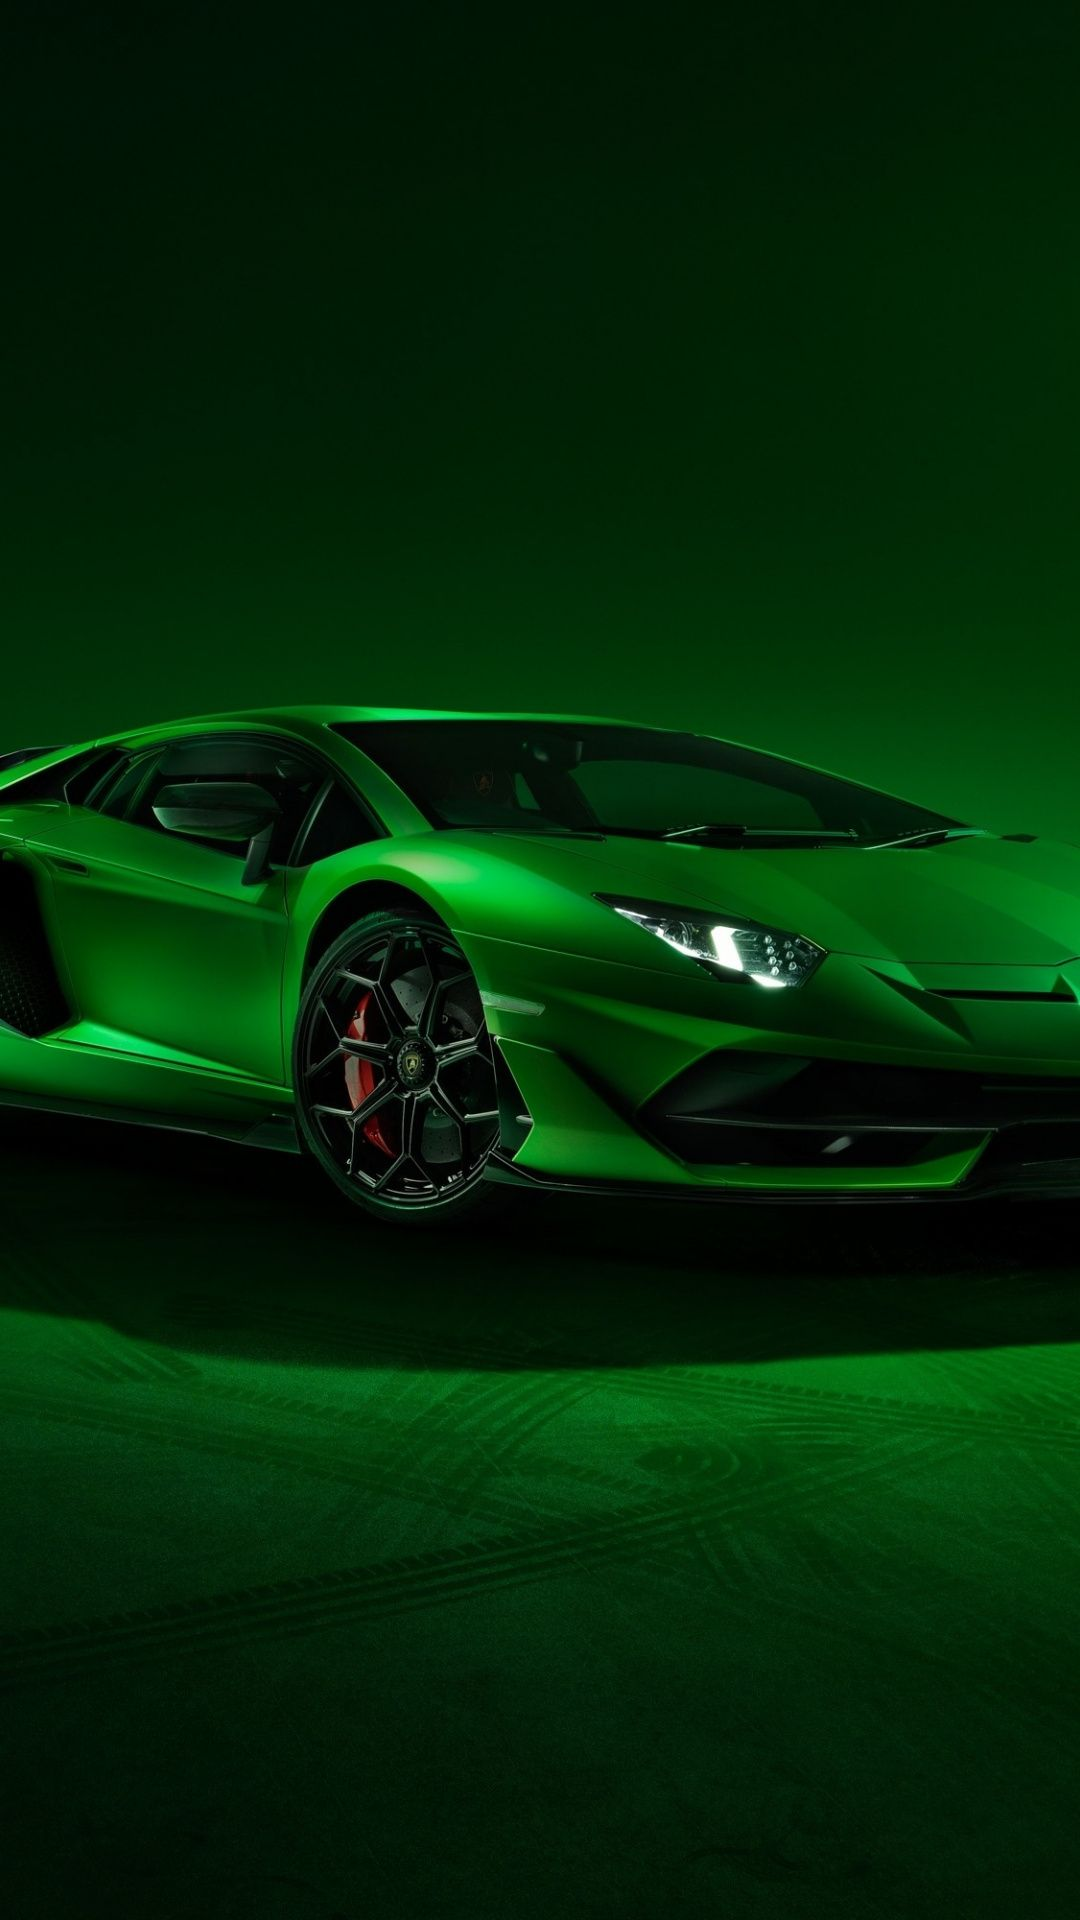 Lamborghini Aventador Svj Sports Car Green 1080x1920 Wallpaper Green Lamborghini Super Luxury Cars Sports Car